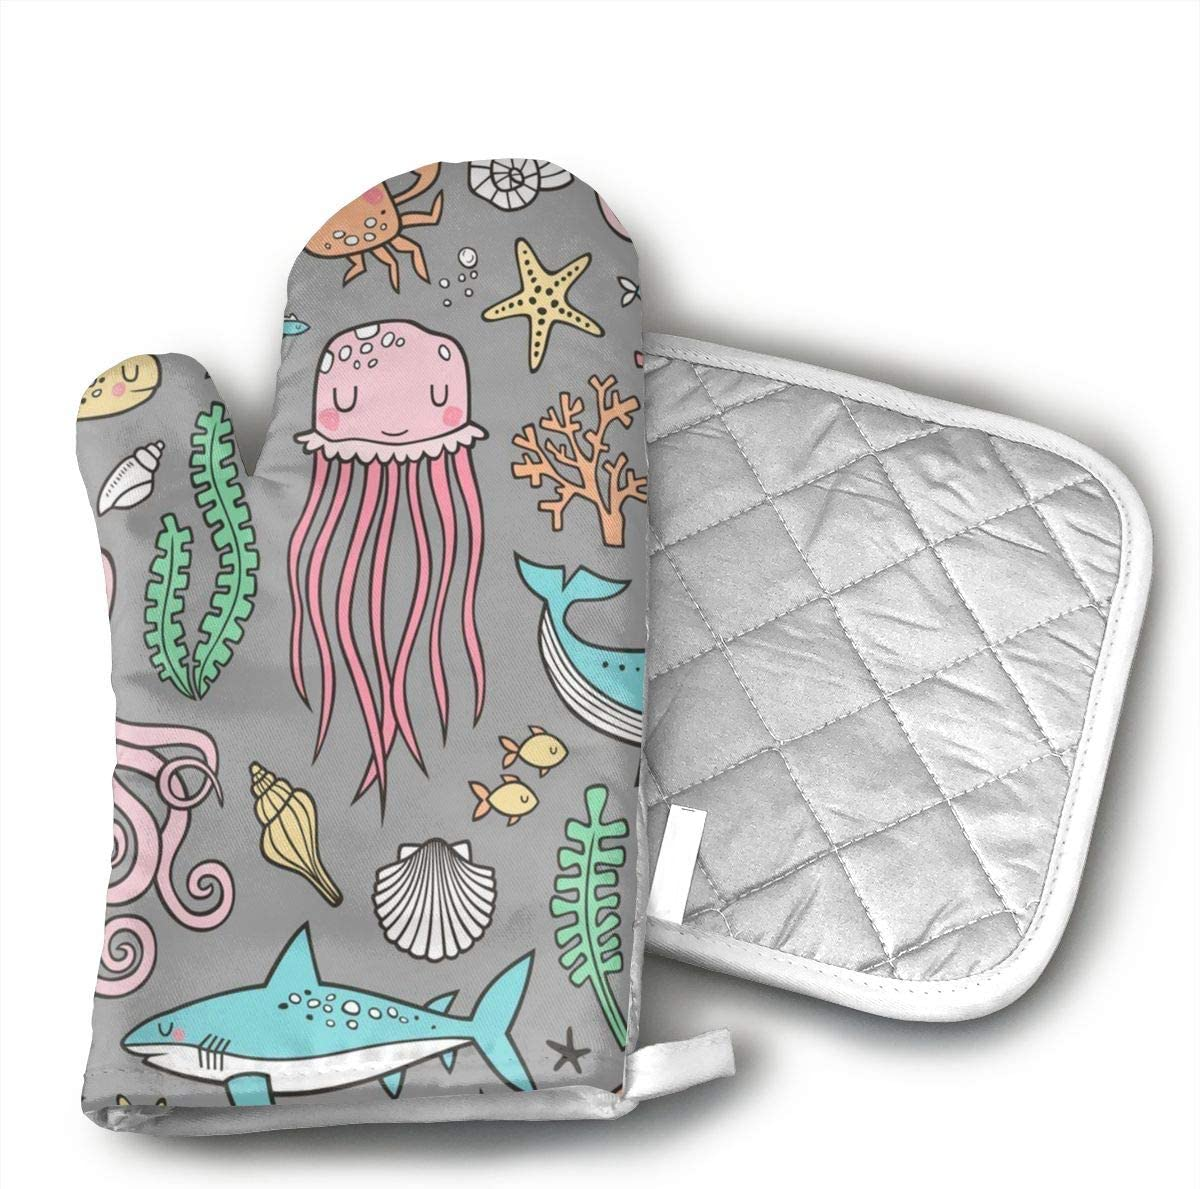 VFSFJKBG Ocean Sea Life Oven Gloves, High Heat Resistance, Machine Washable High Heat Resistant Polyester Filling for Thanks Giving, Christmas